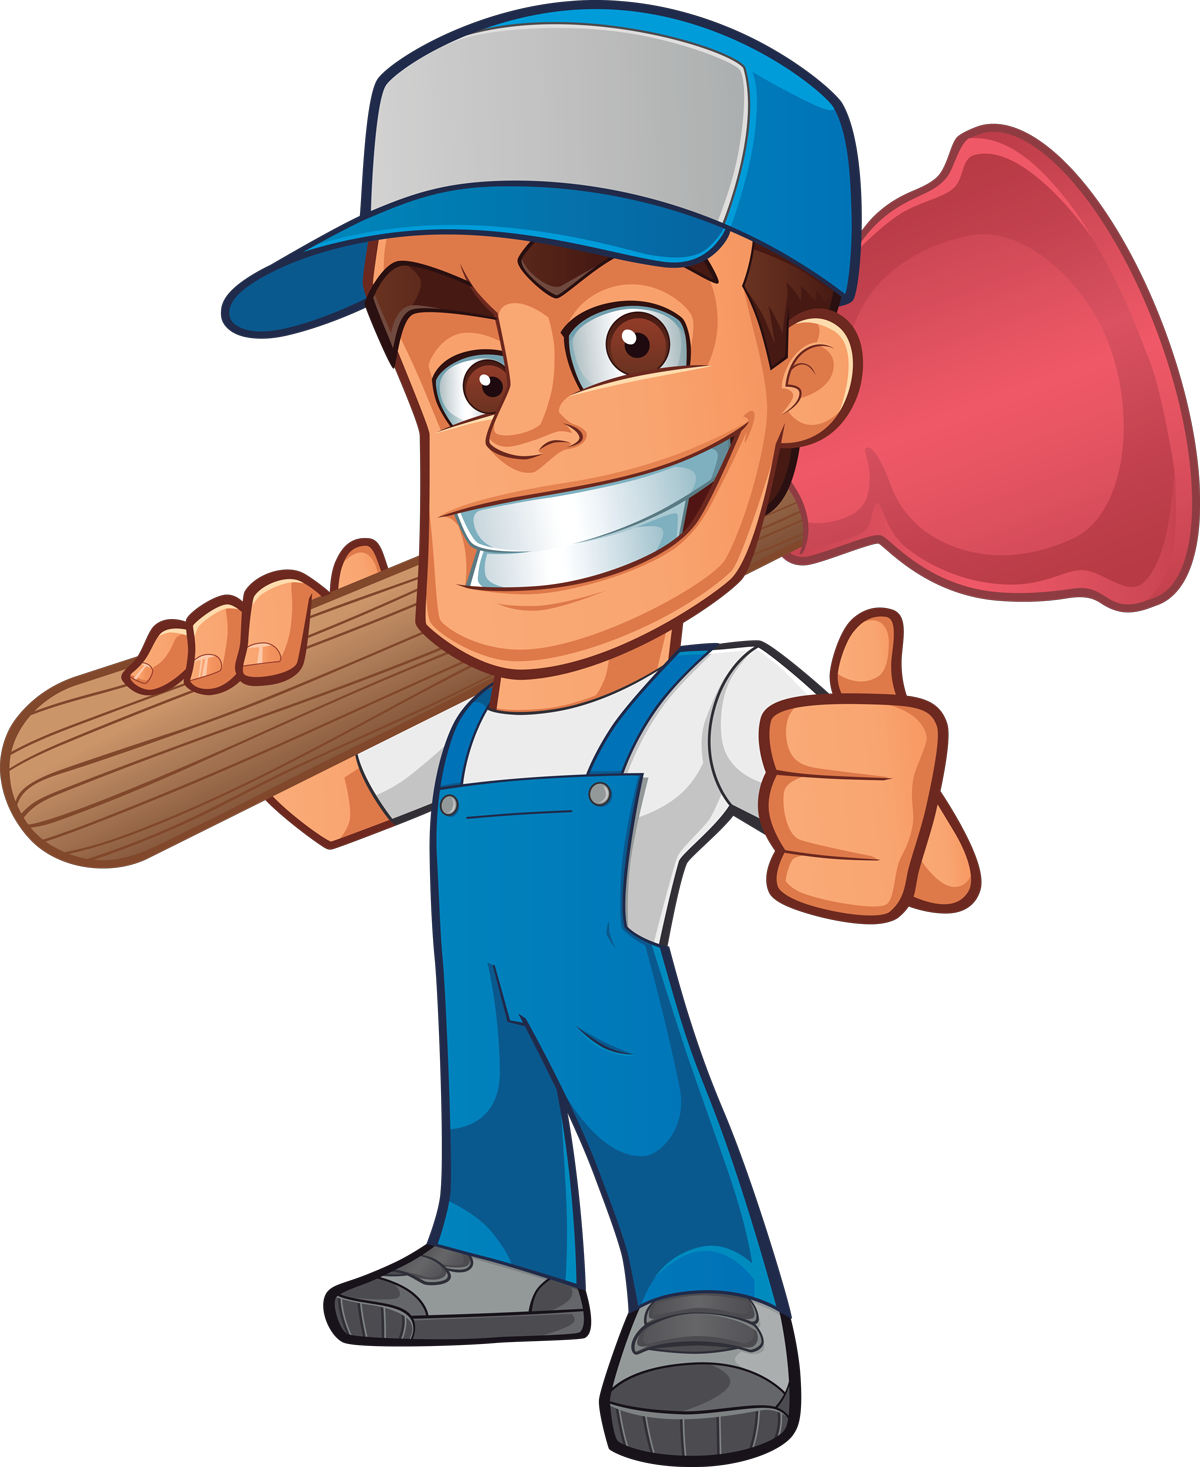 Plumbing gas services in. Plumber clipart worker